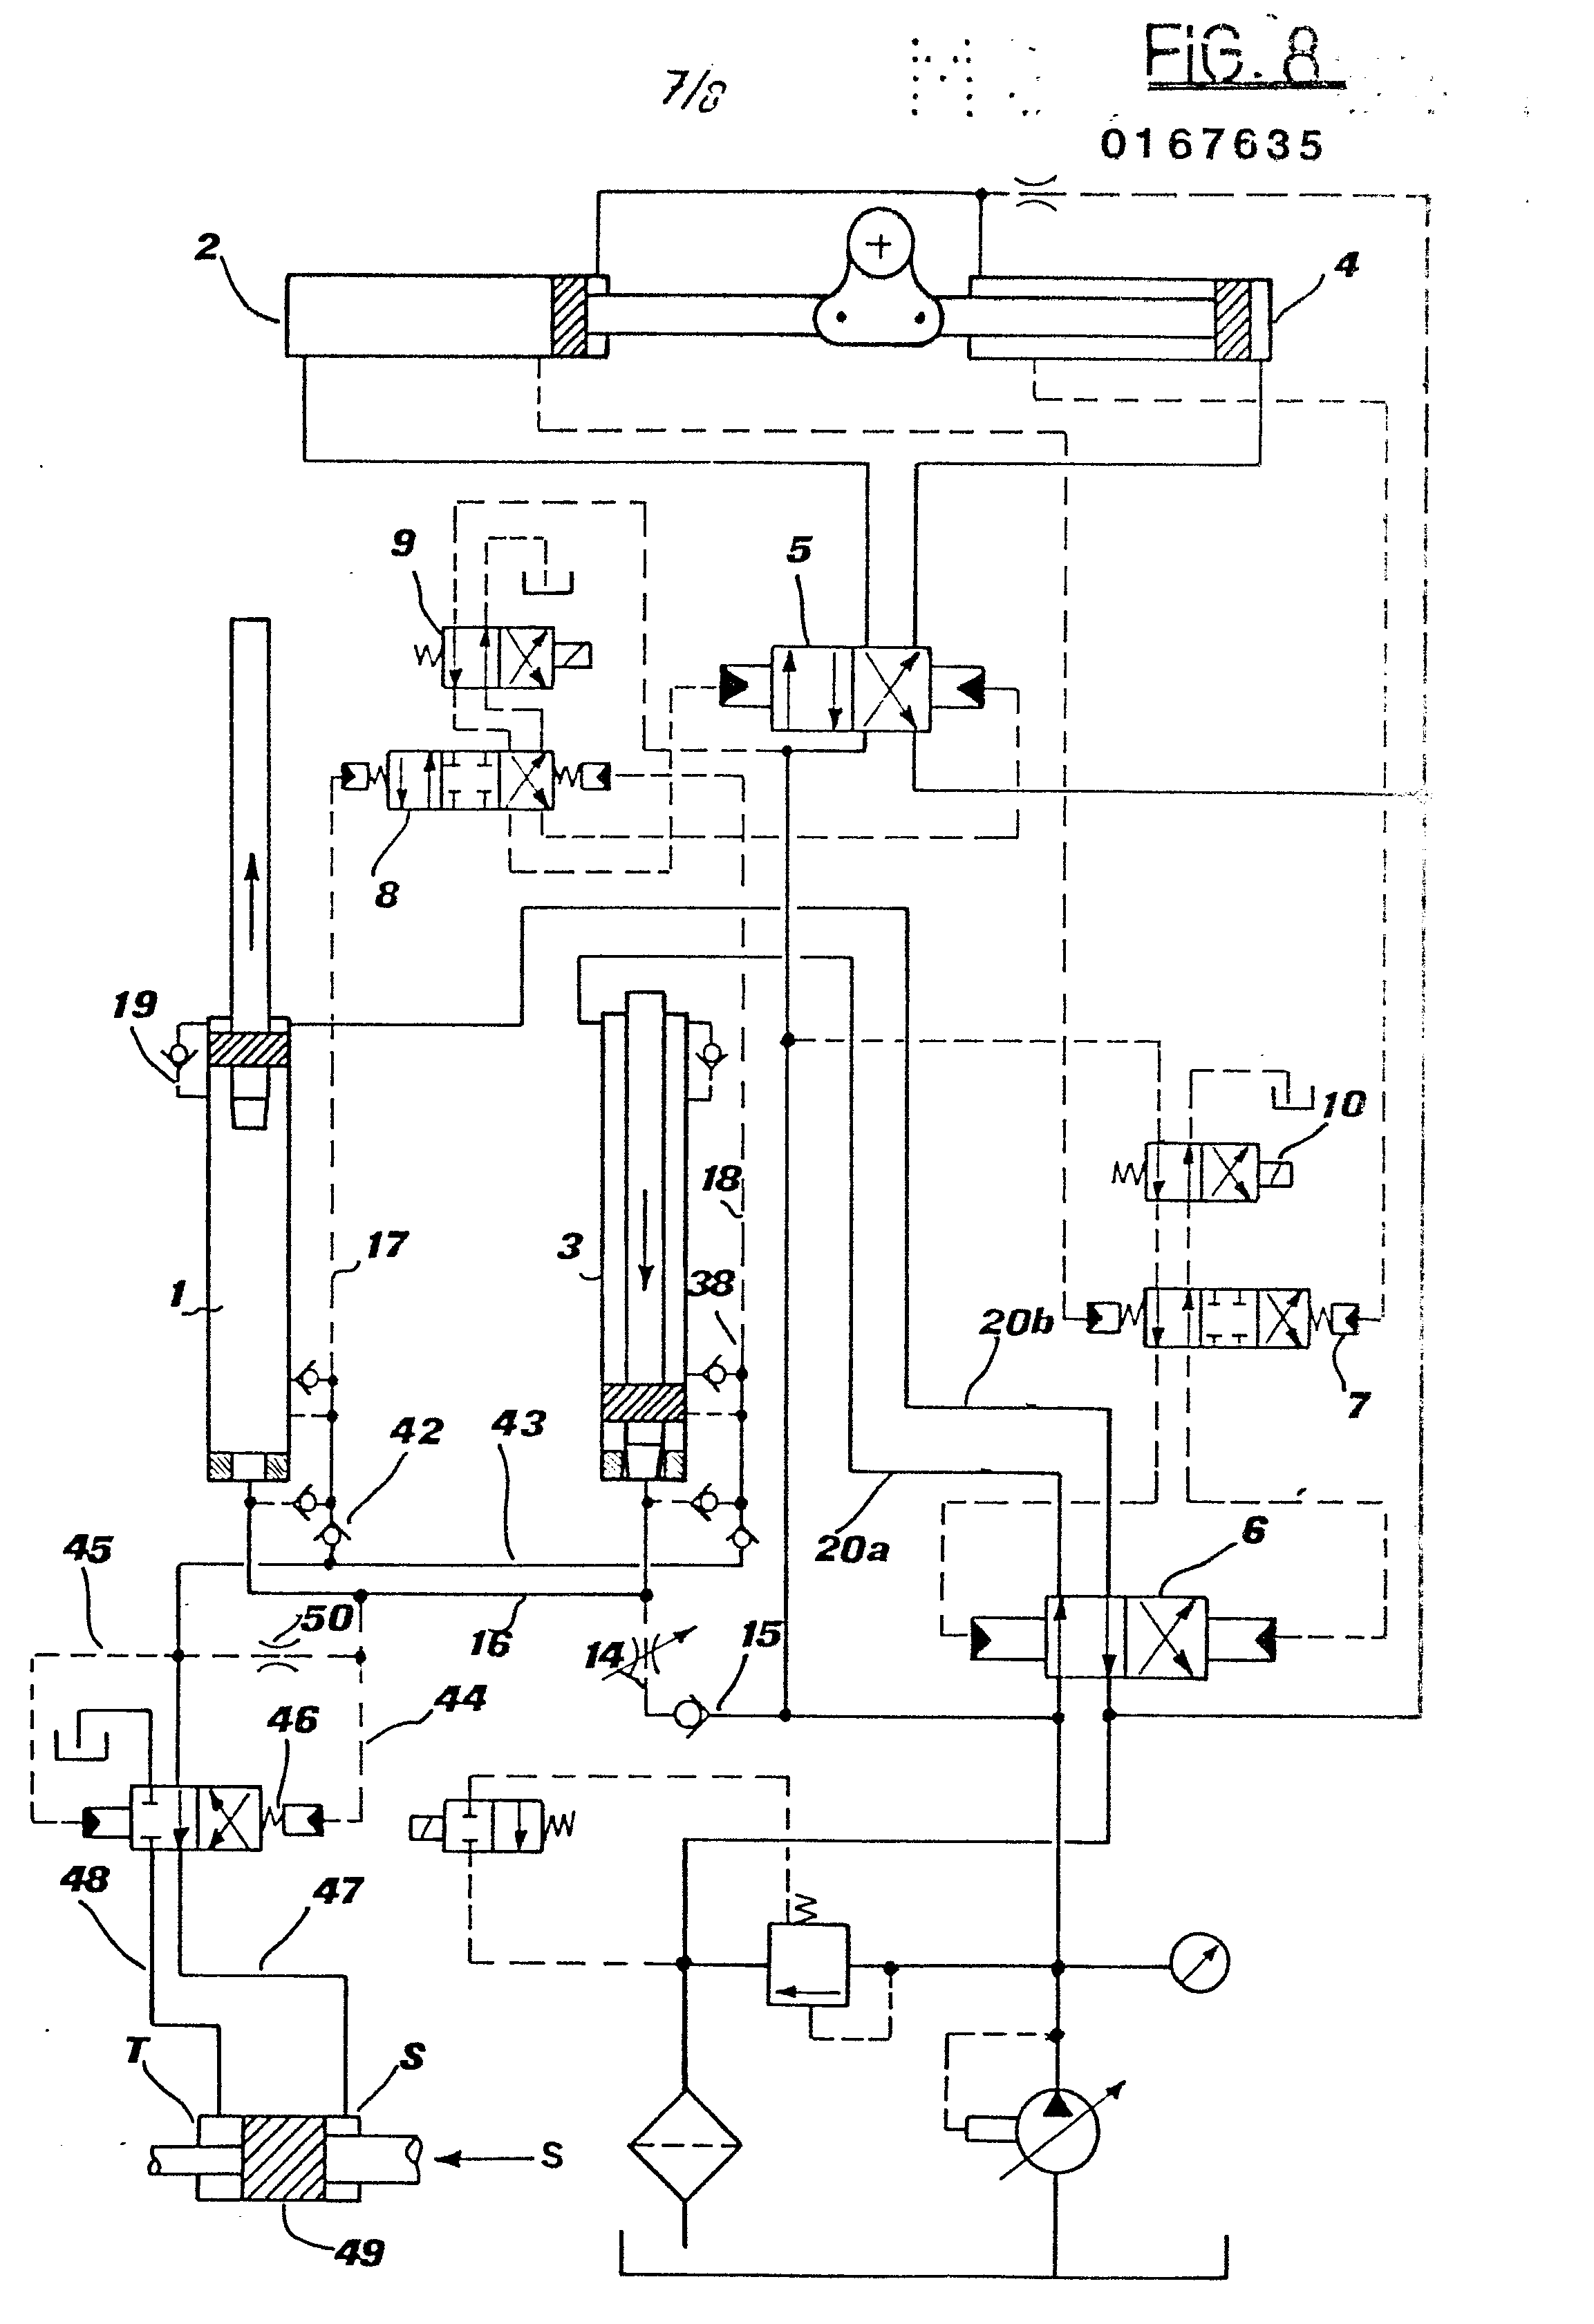 volvo wiring diagrams additionally 740 ignition diagram